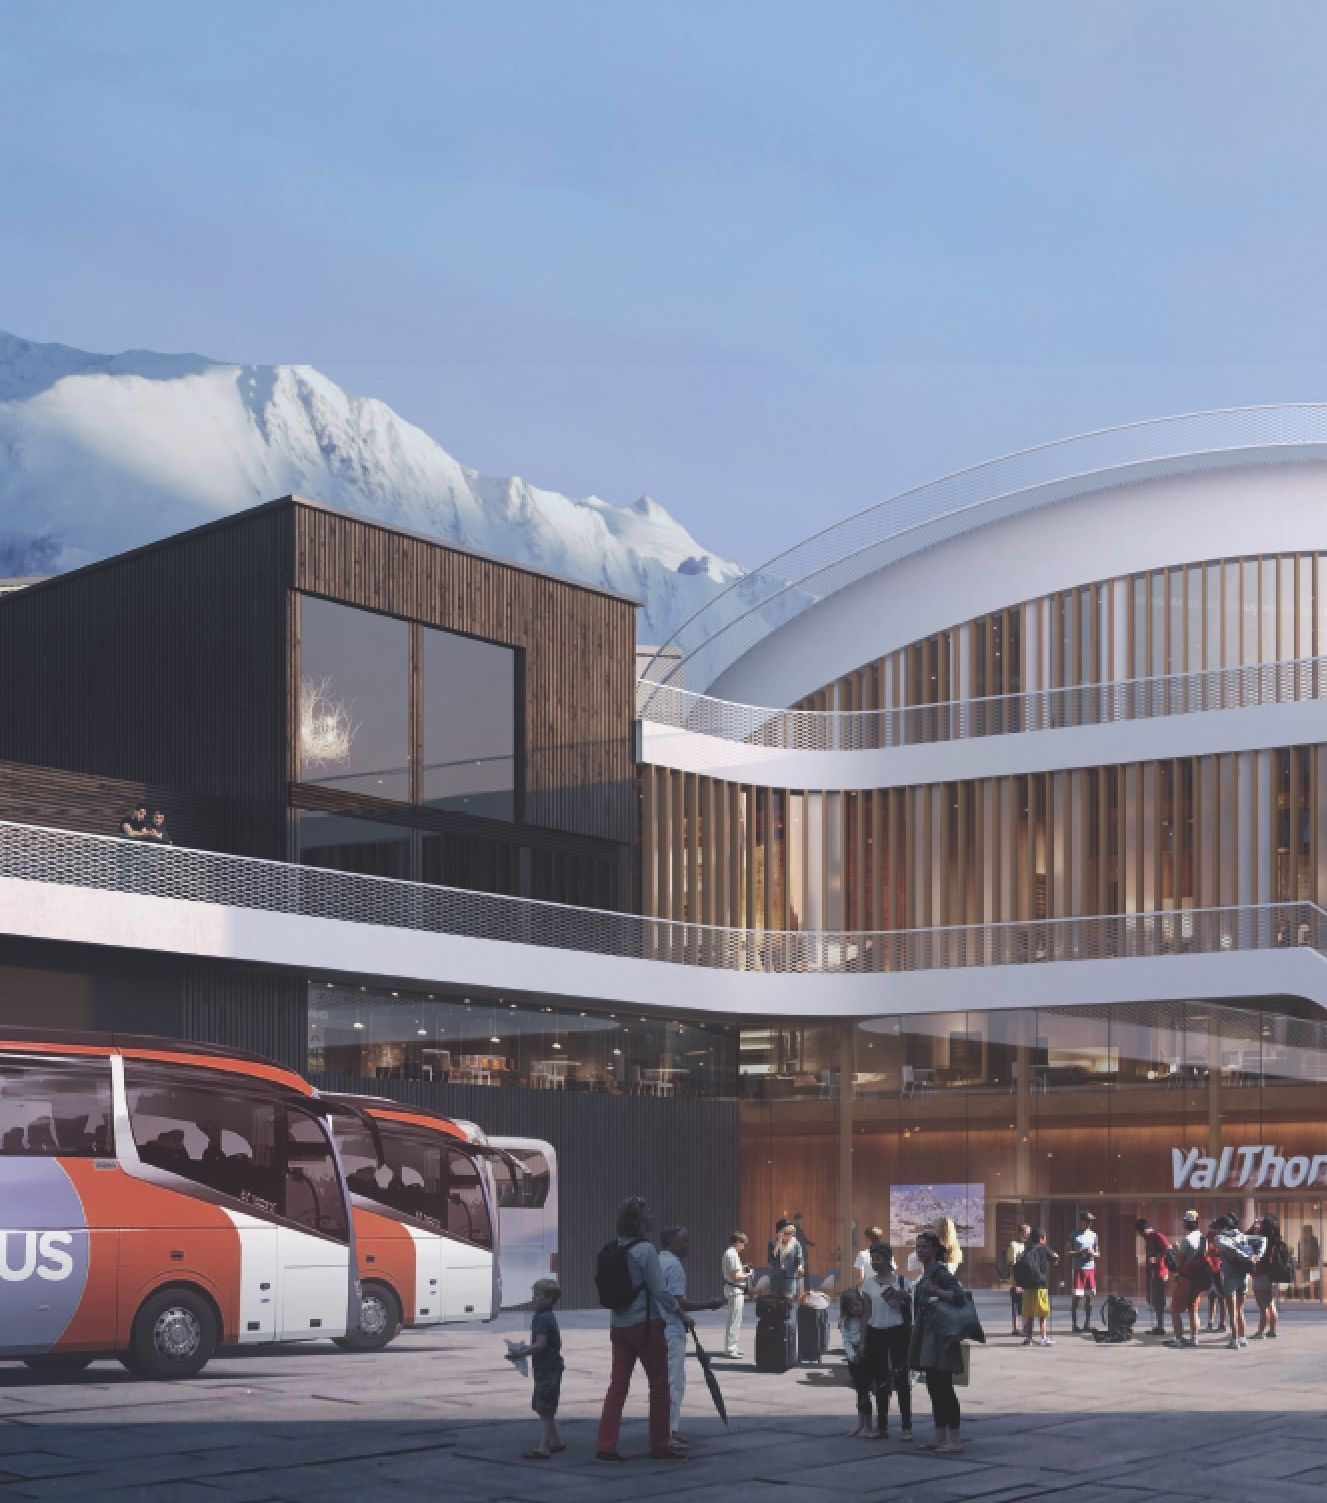 CENTRE SPORTIF DE VAL THORENS - Restructuration et extension